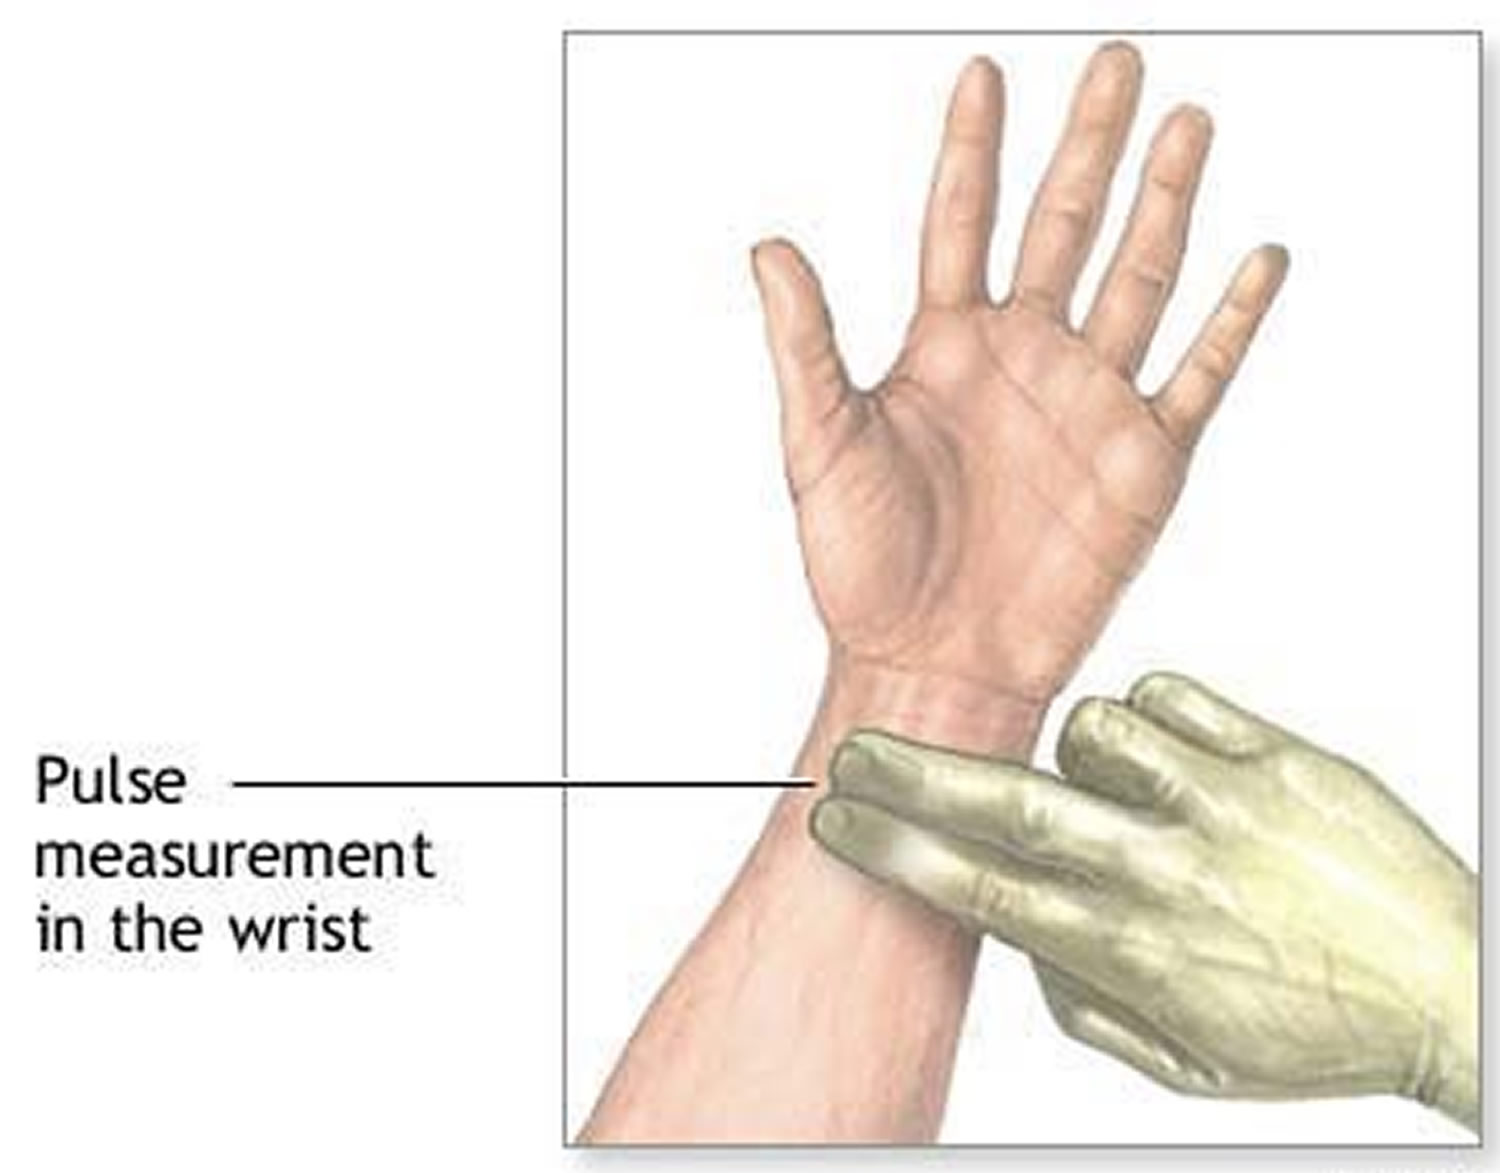 pulse measurement at the wrist